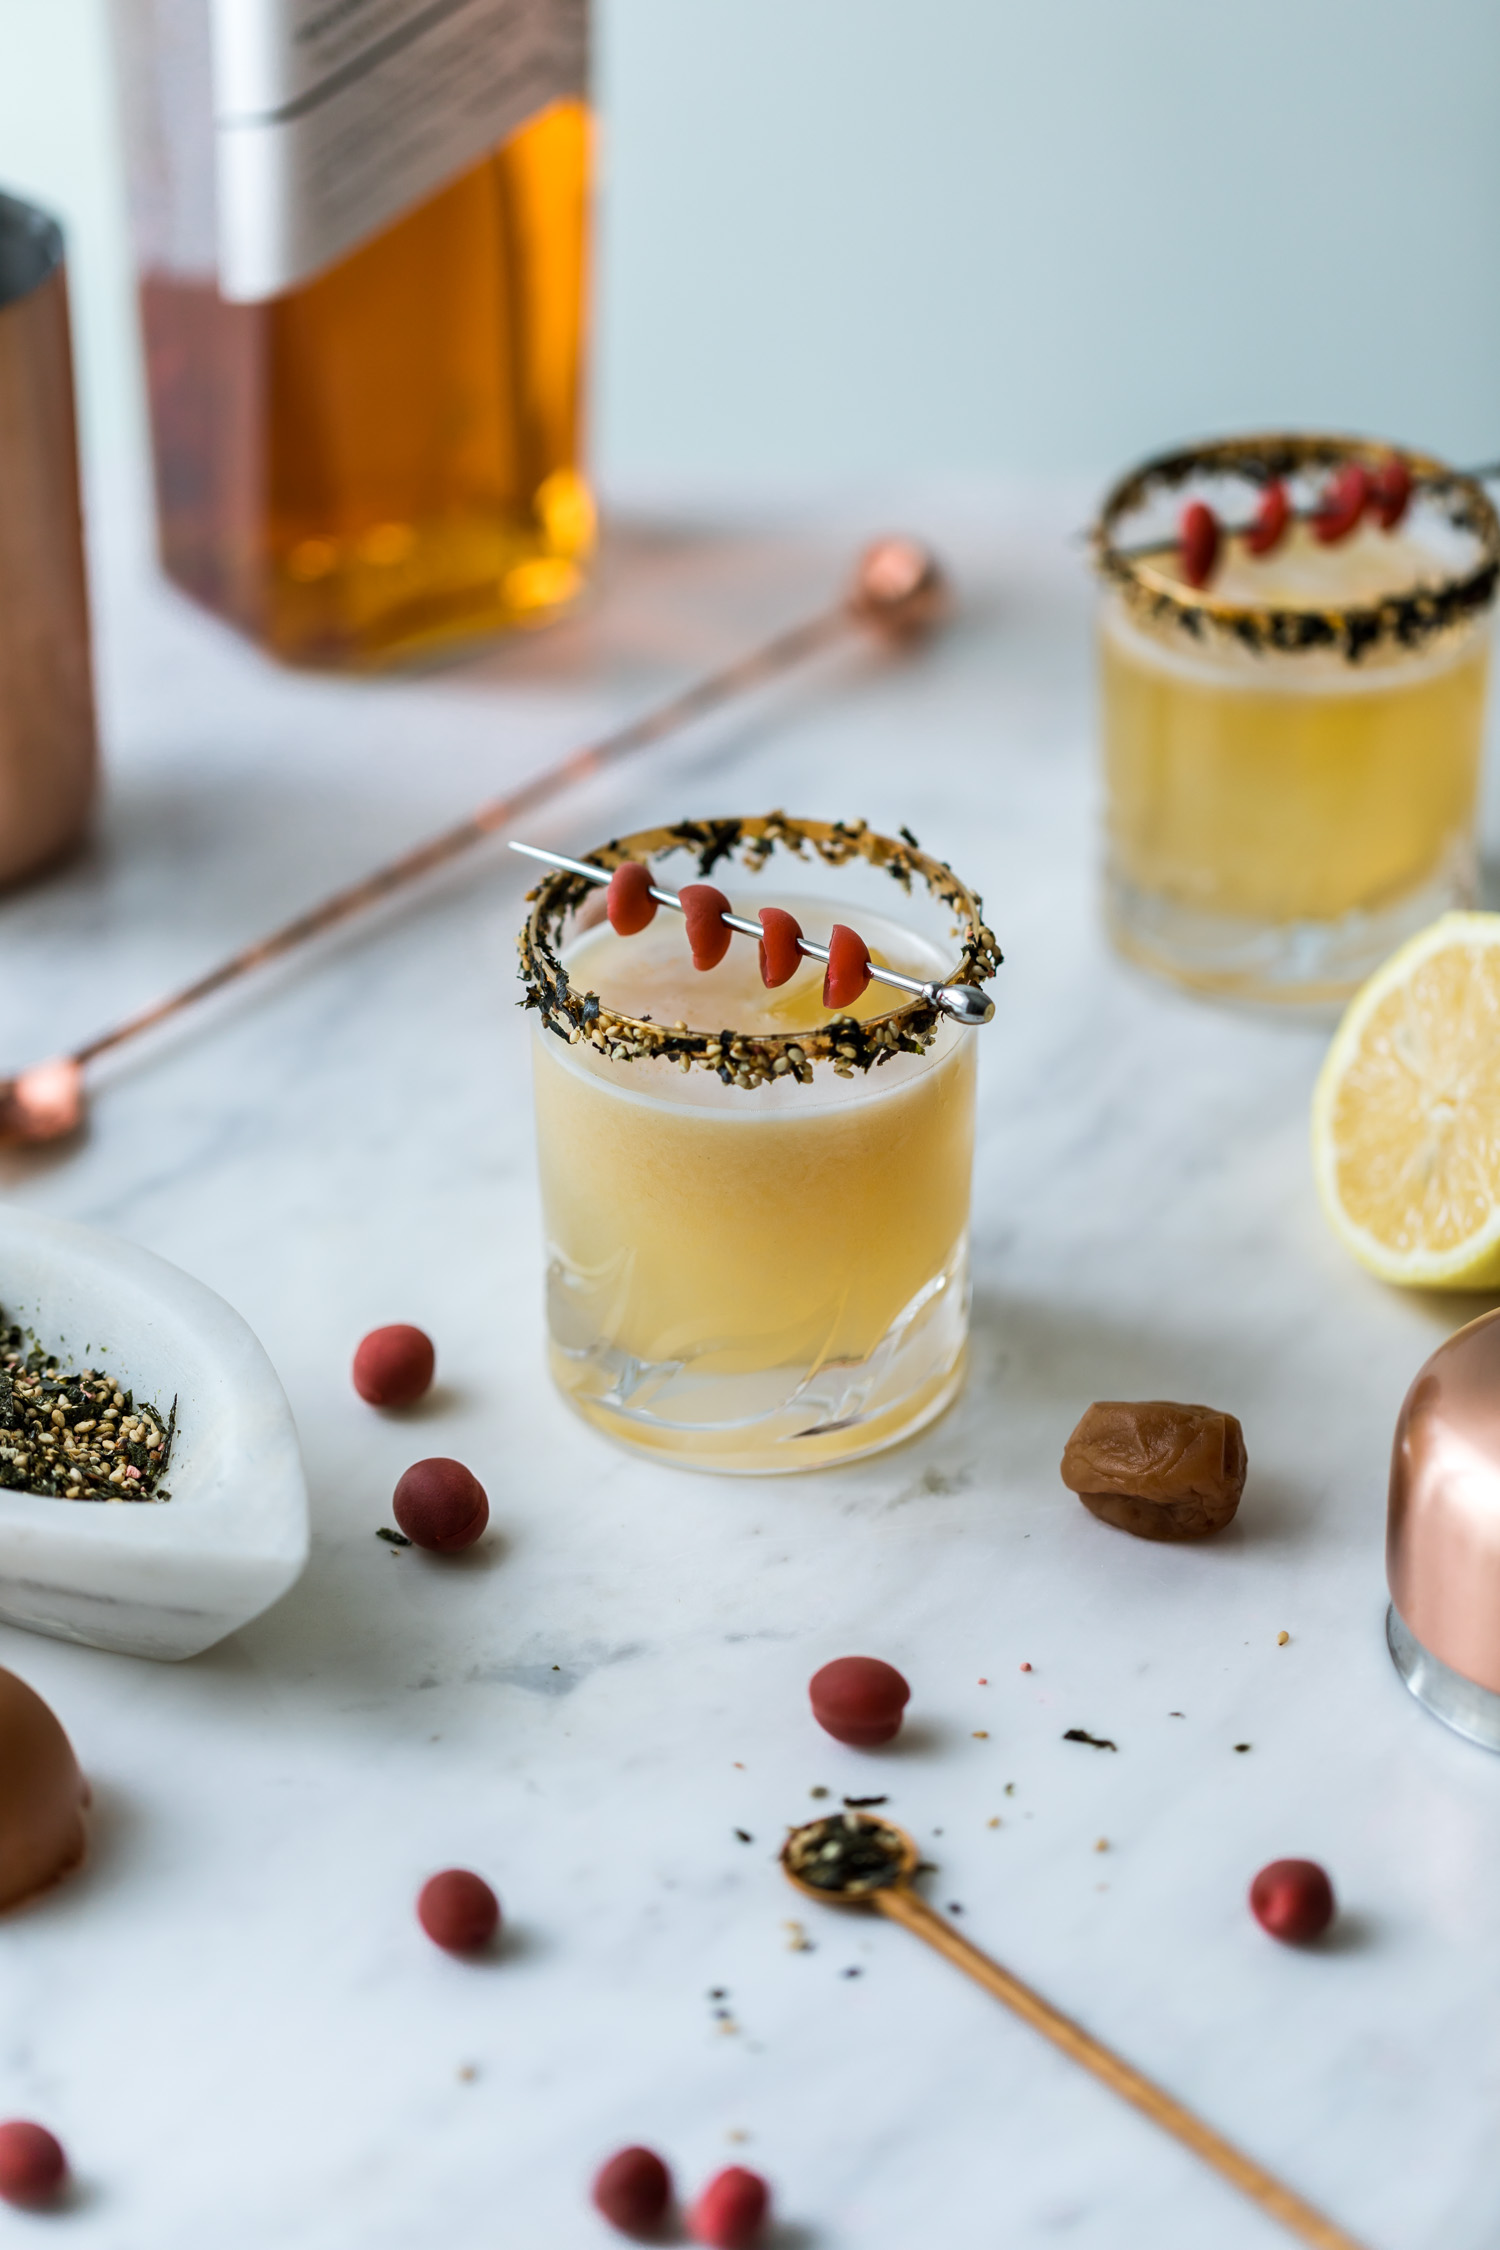 Refreshing Whicky Cocktails to make at home - Ume Furikake